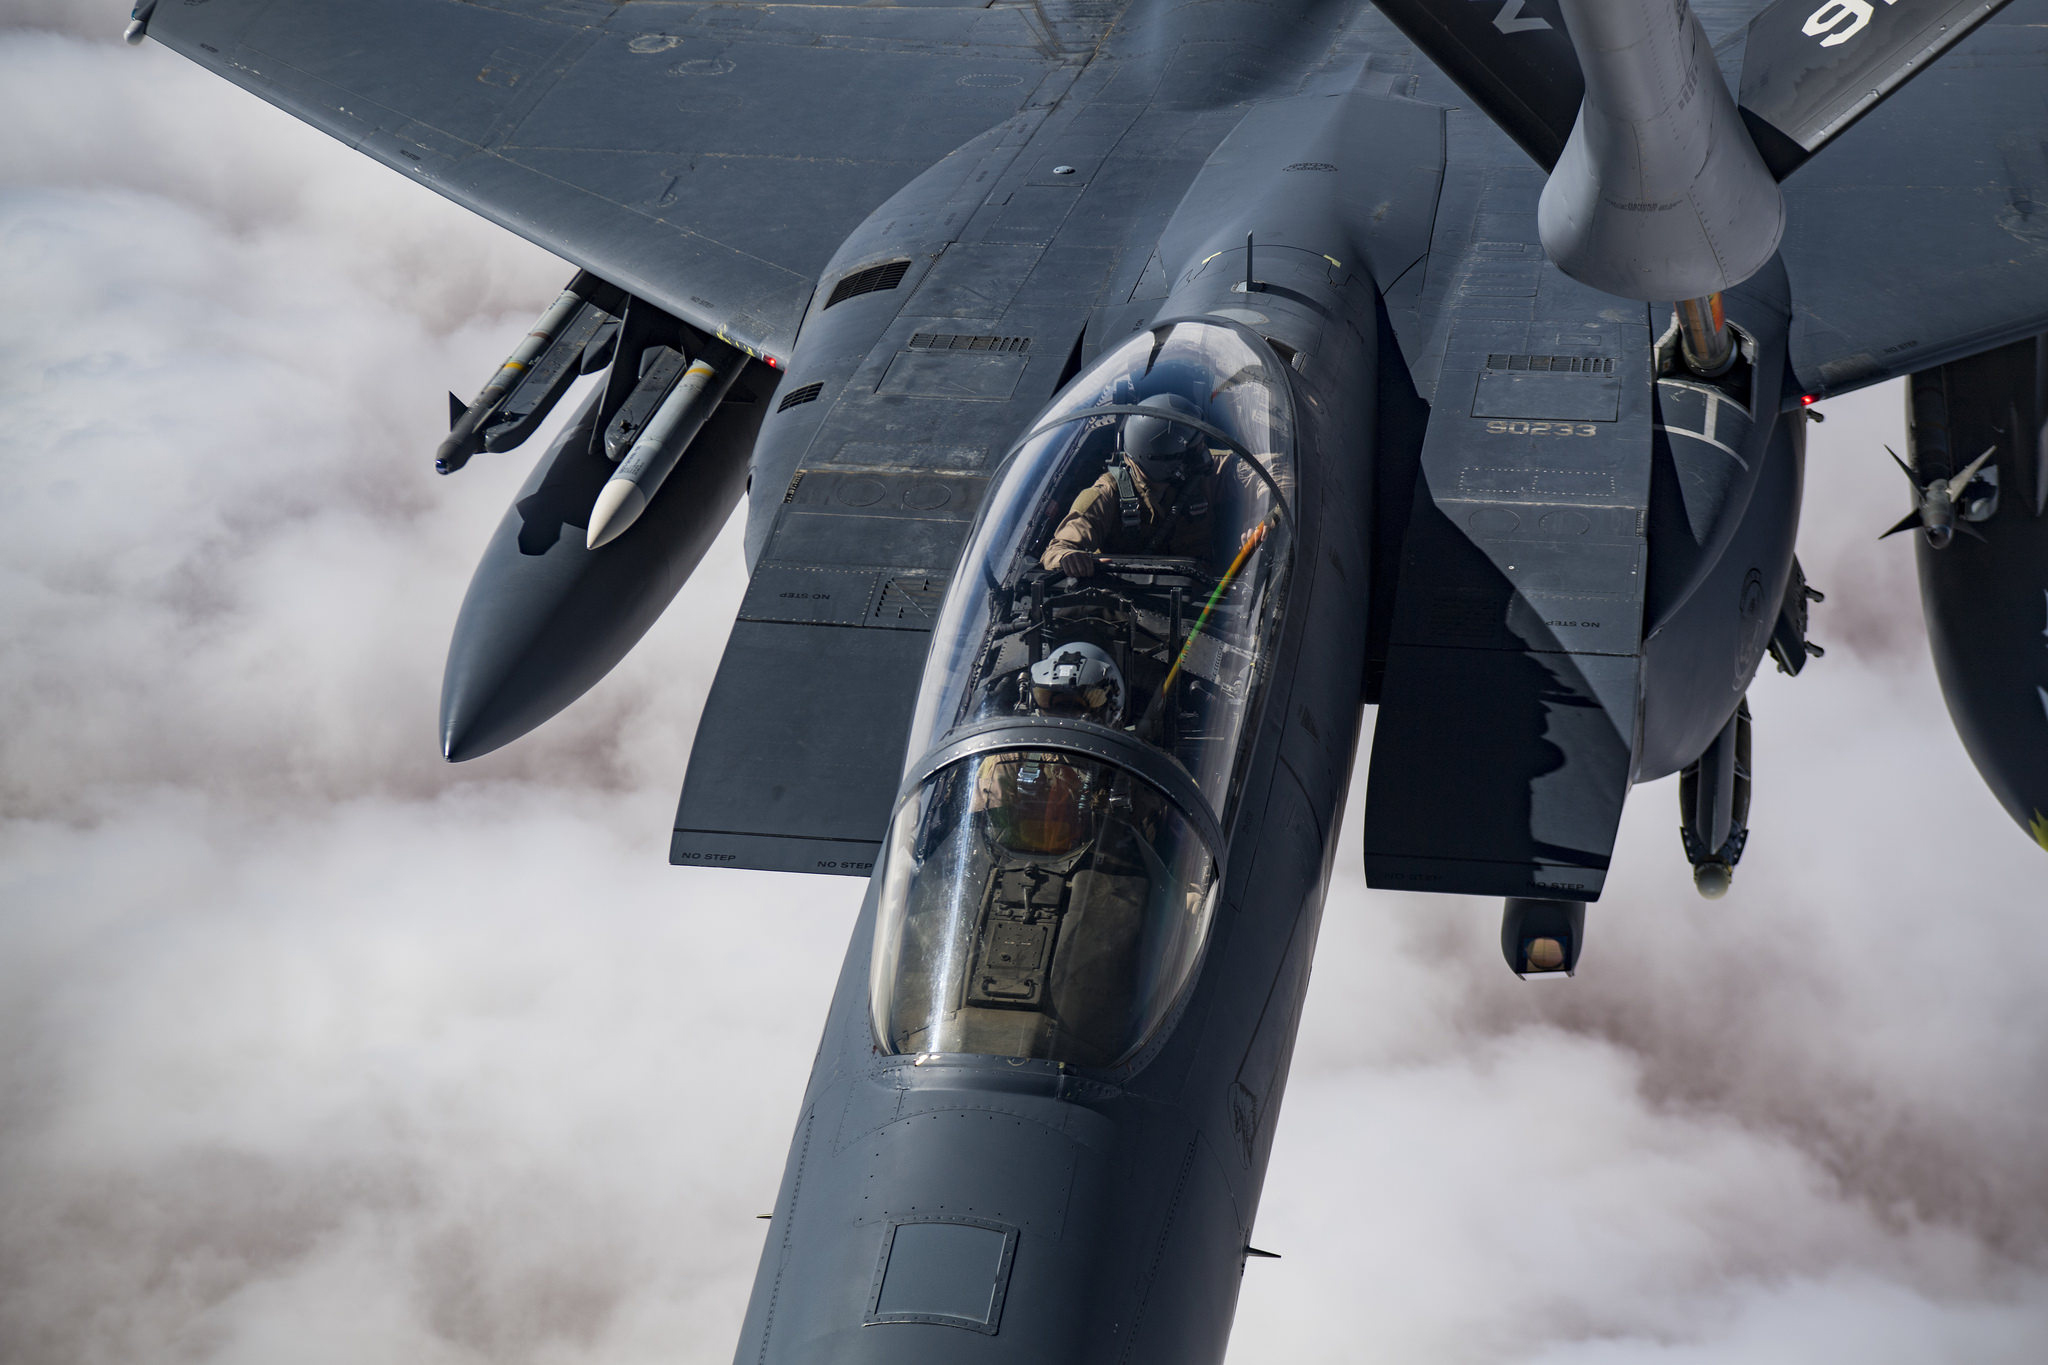 A U.S. Air Force F-15E Strike Eagle receives in-flight fuel from a KC-135 Stratotanker on Oct. 25, 2018, while flying over Iraq in support of Operation Inherent Resolve. (Staff Sgt. Clayton Cupit/Air Force)